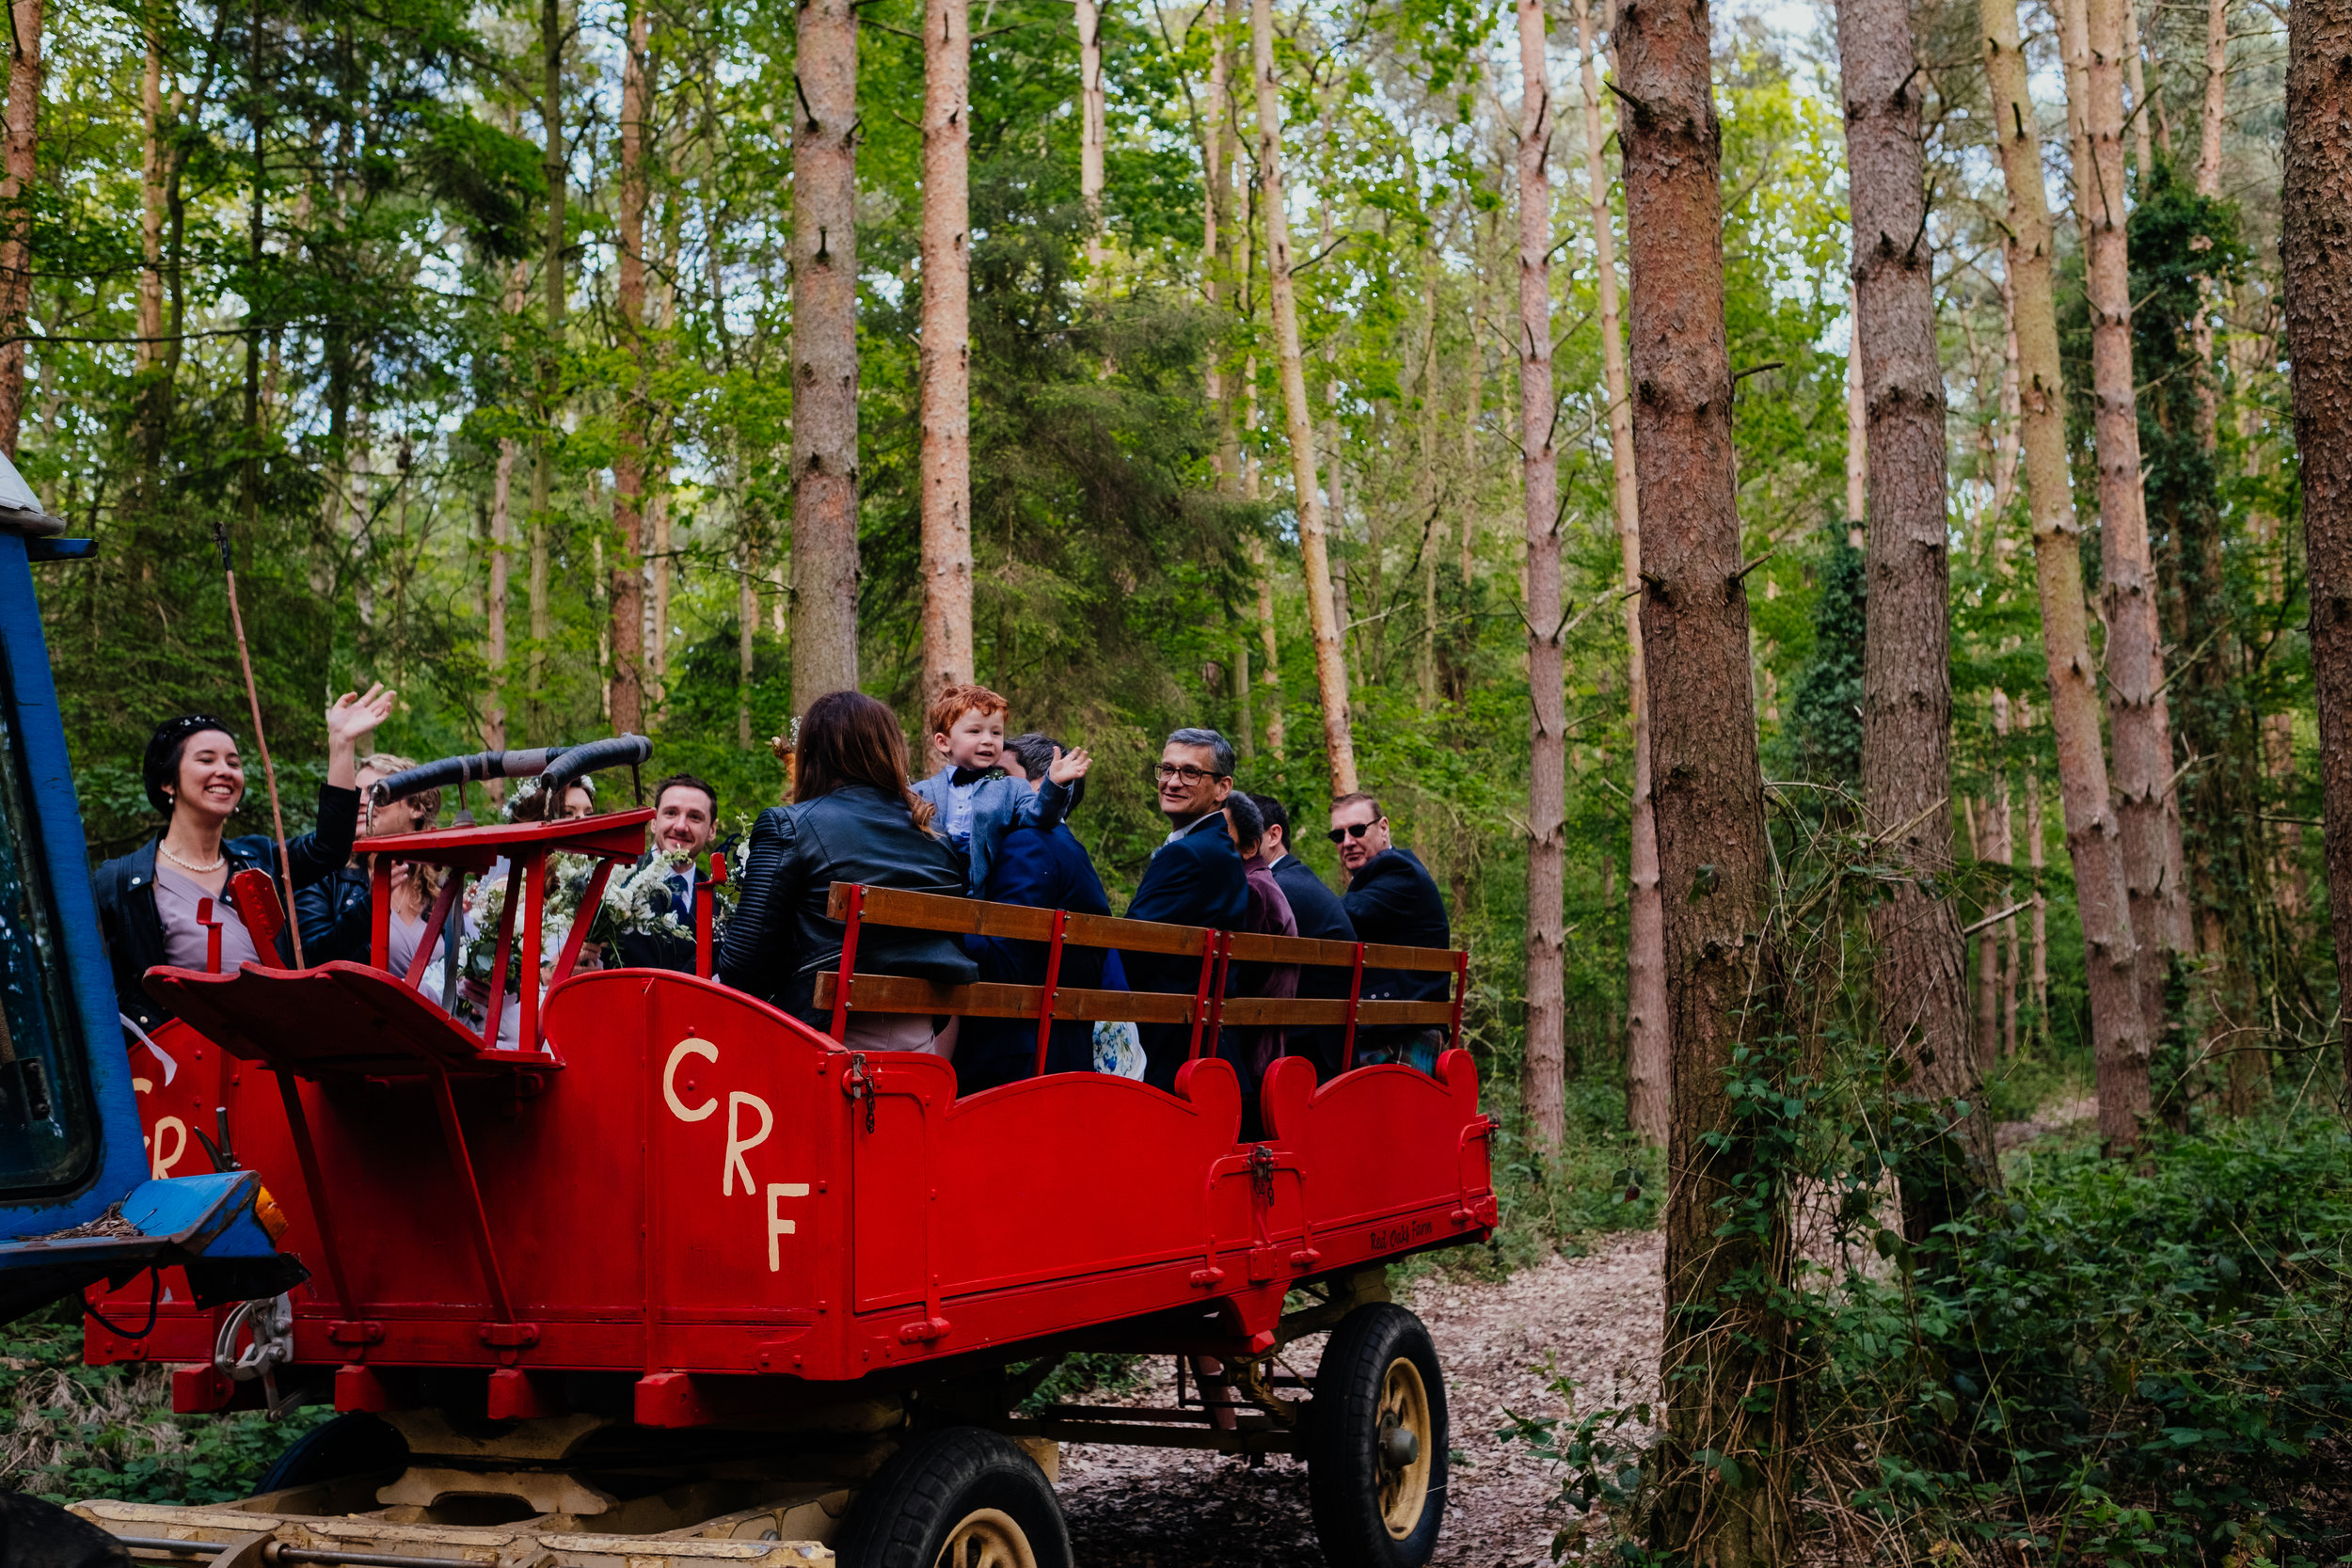 Captains Wood Barn Wedding Photography wedding tractor carrying wedding party